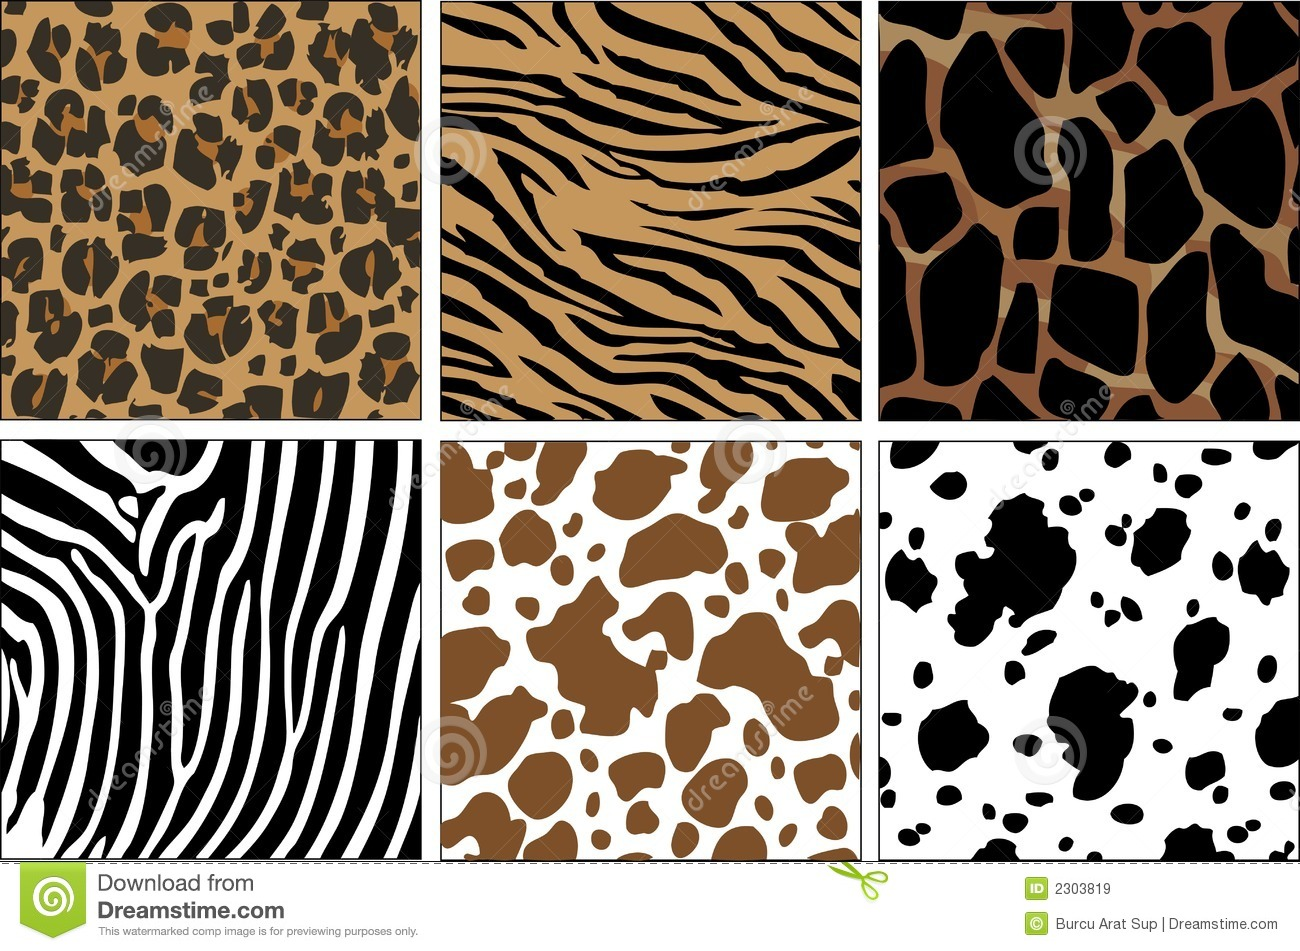 Illustration of animal skin textures, background patterns.